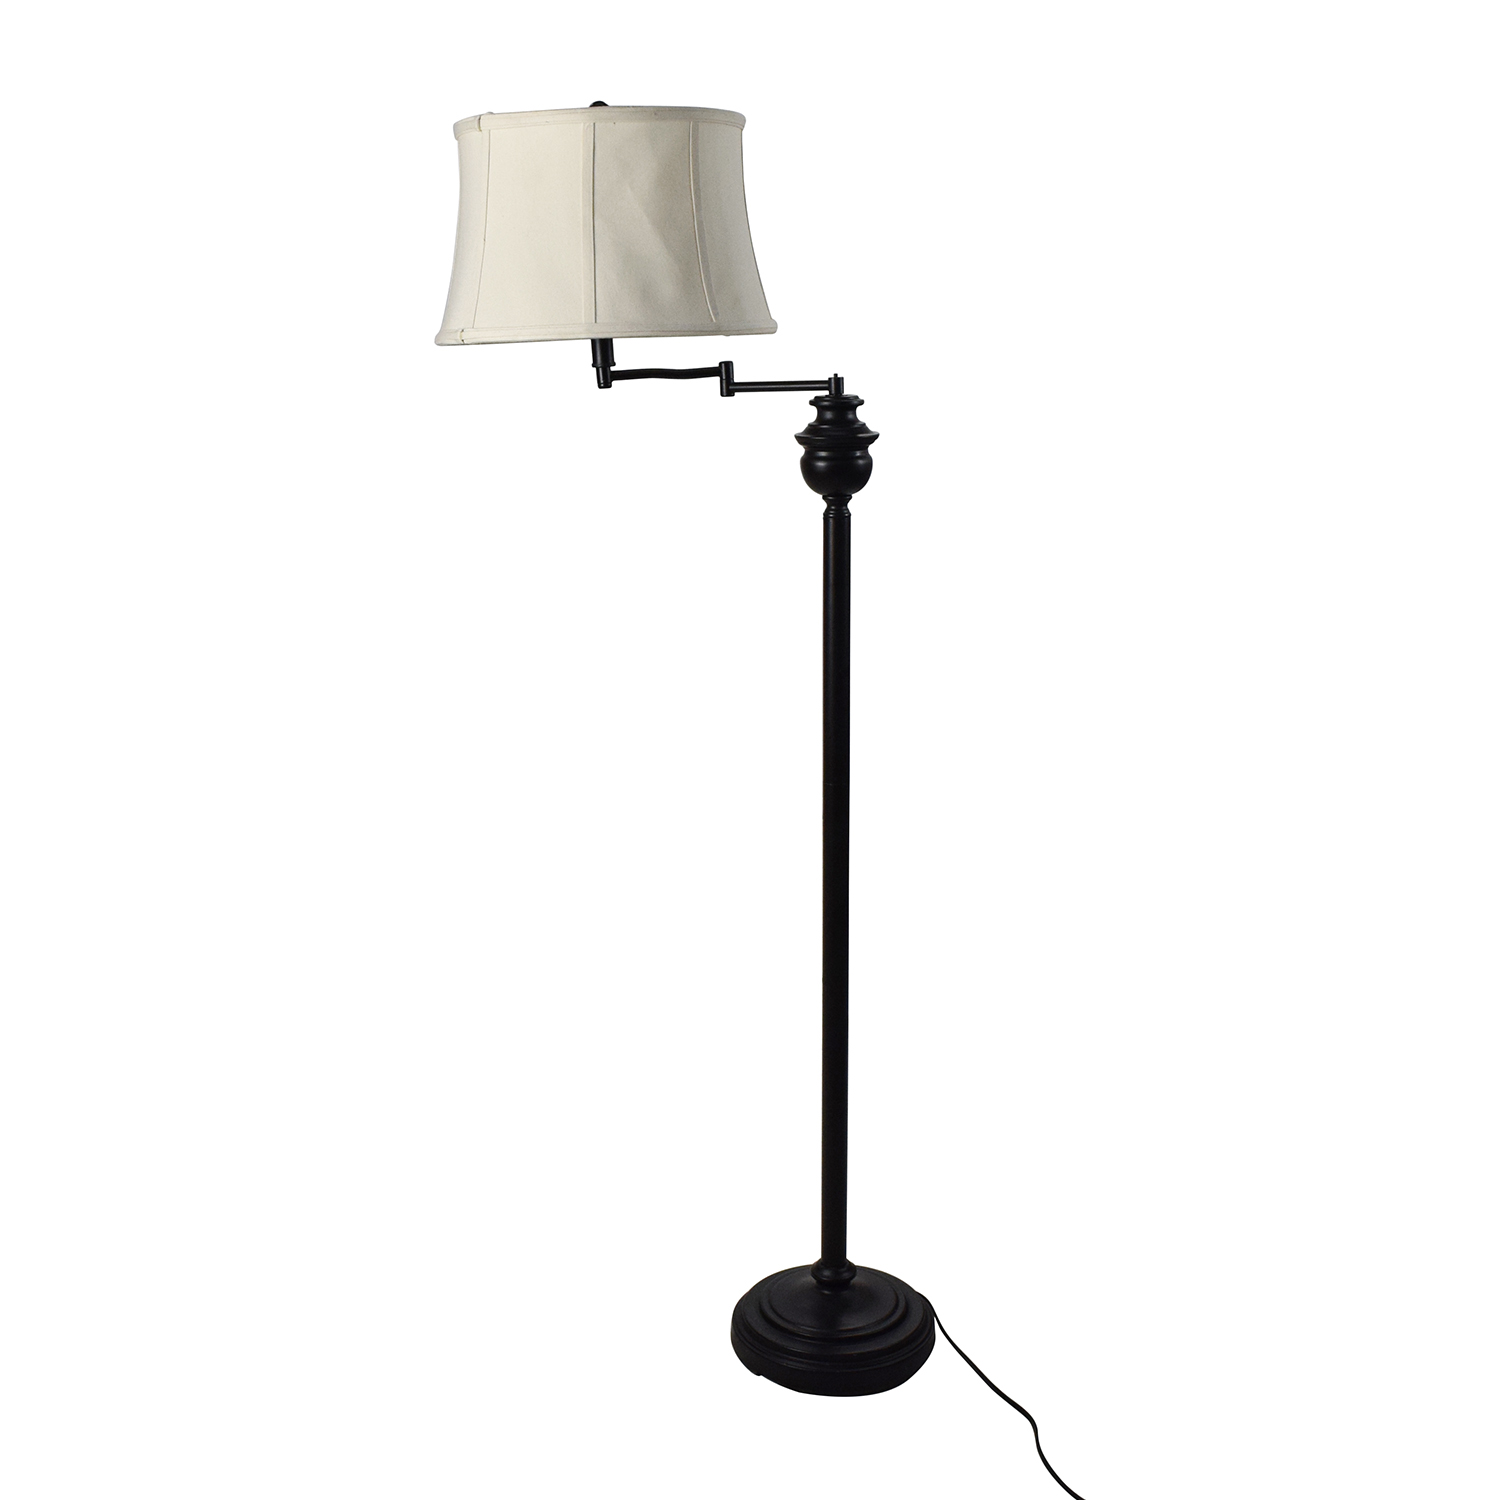 buy Macys Swing Arm Floor Lamp Macys